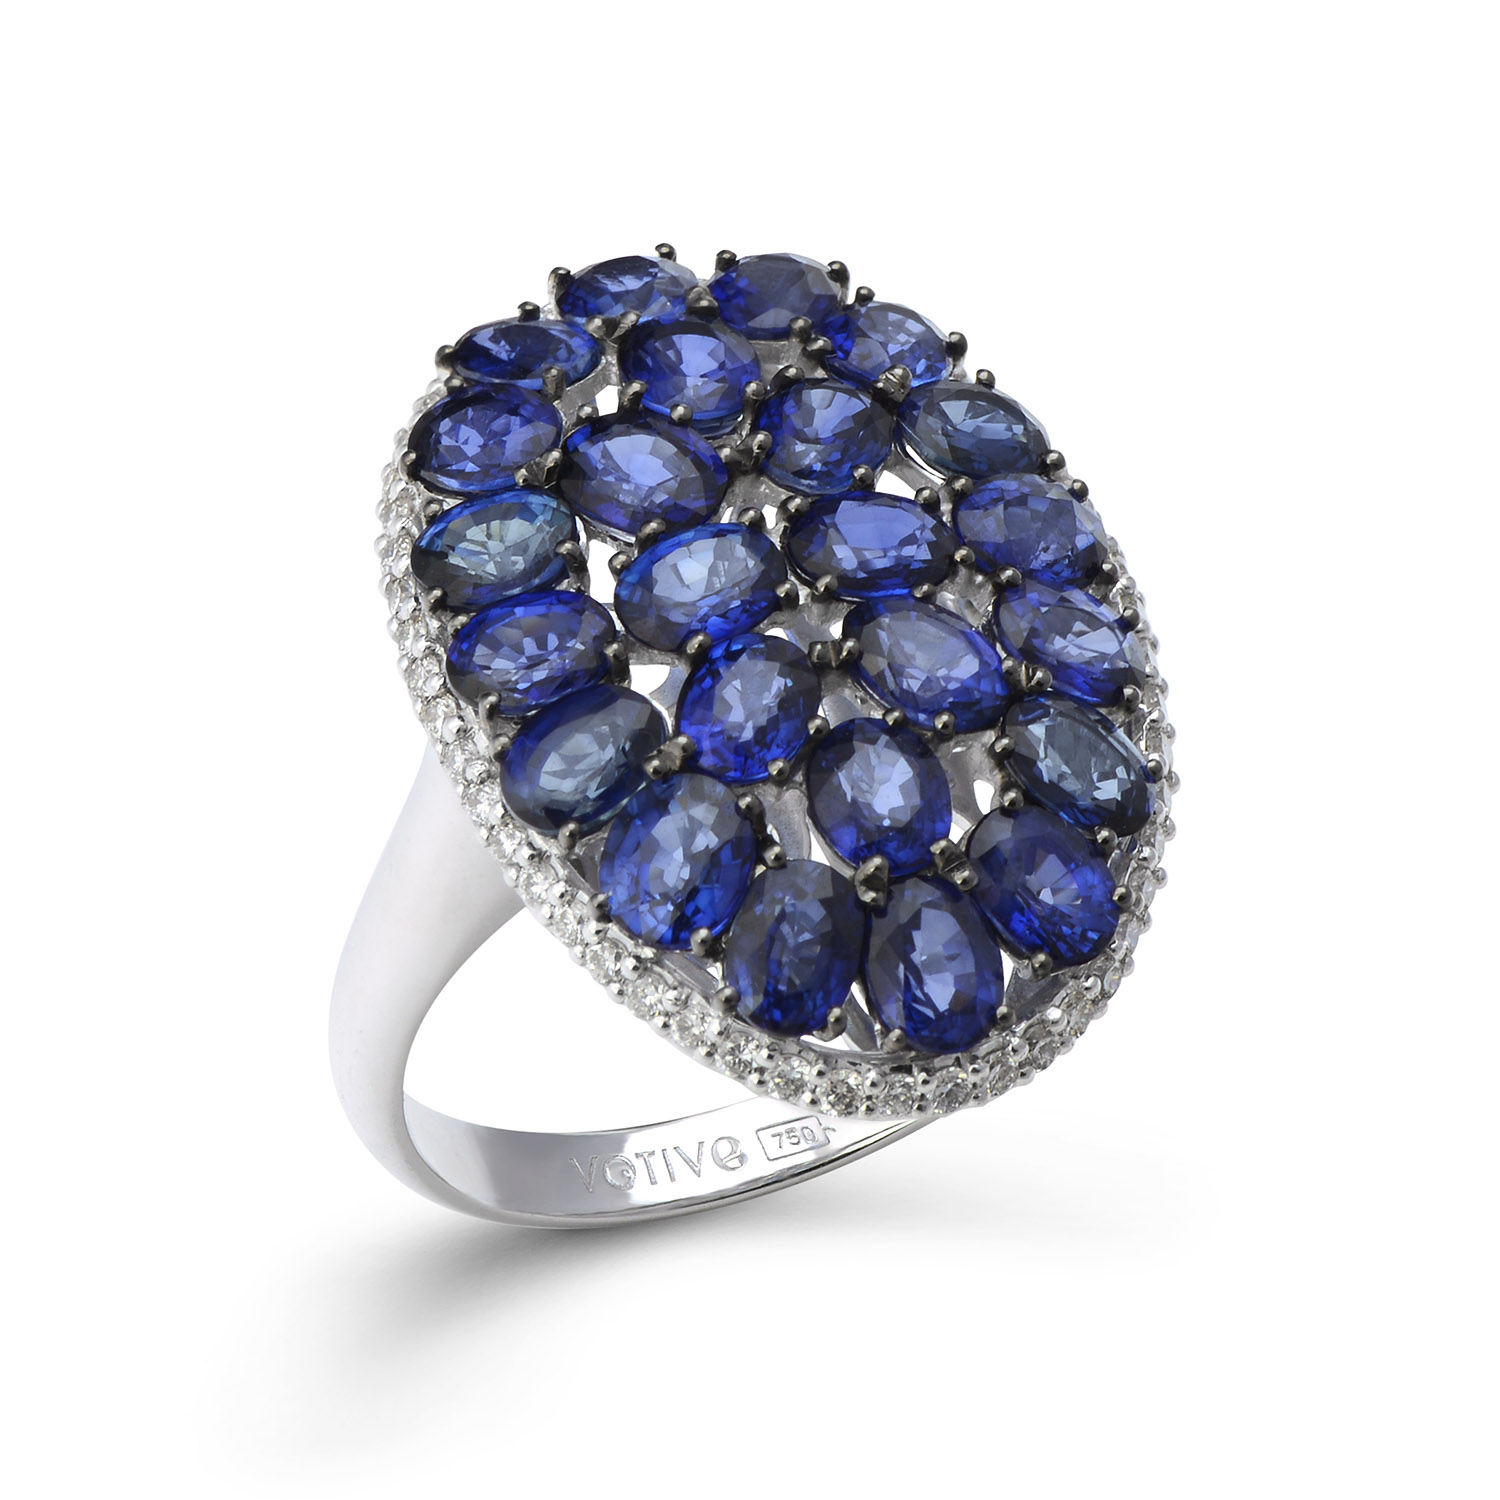 Destiny by Design Ring (Blueberry)